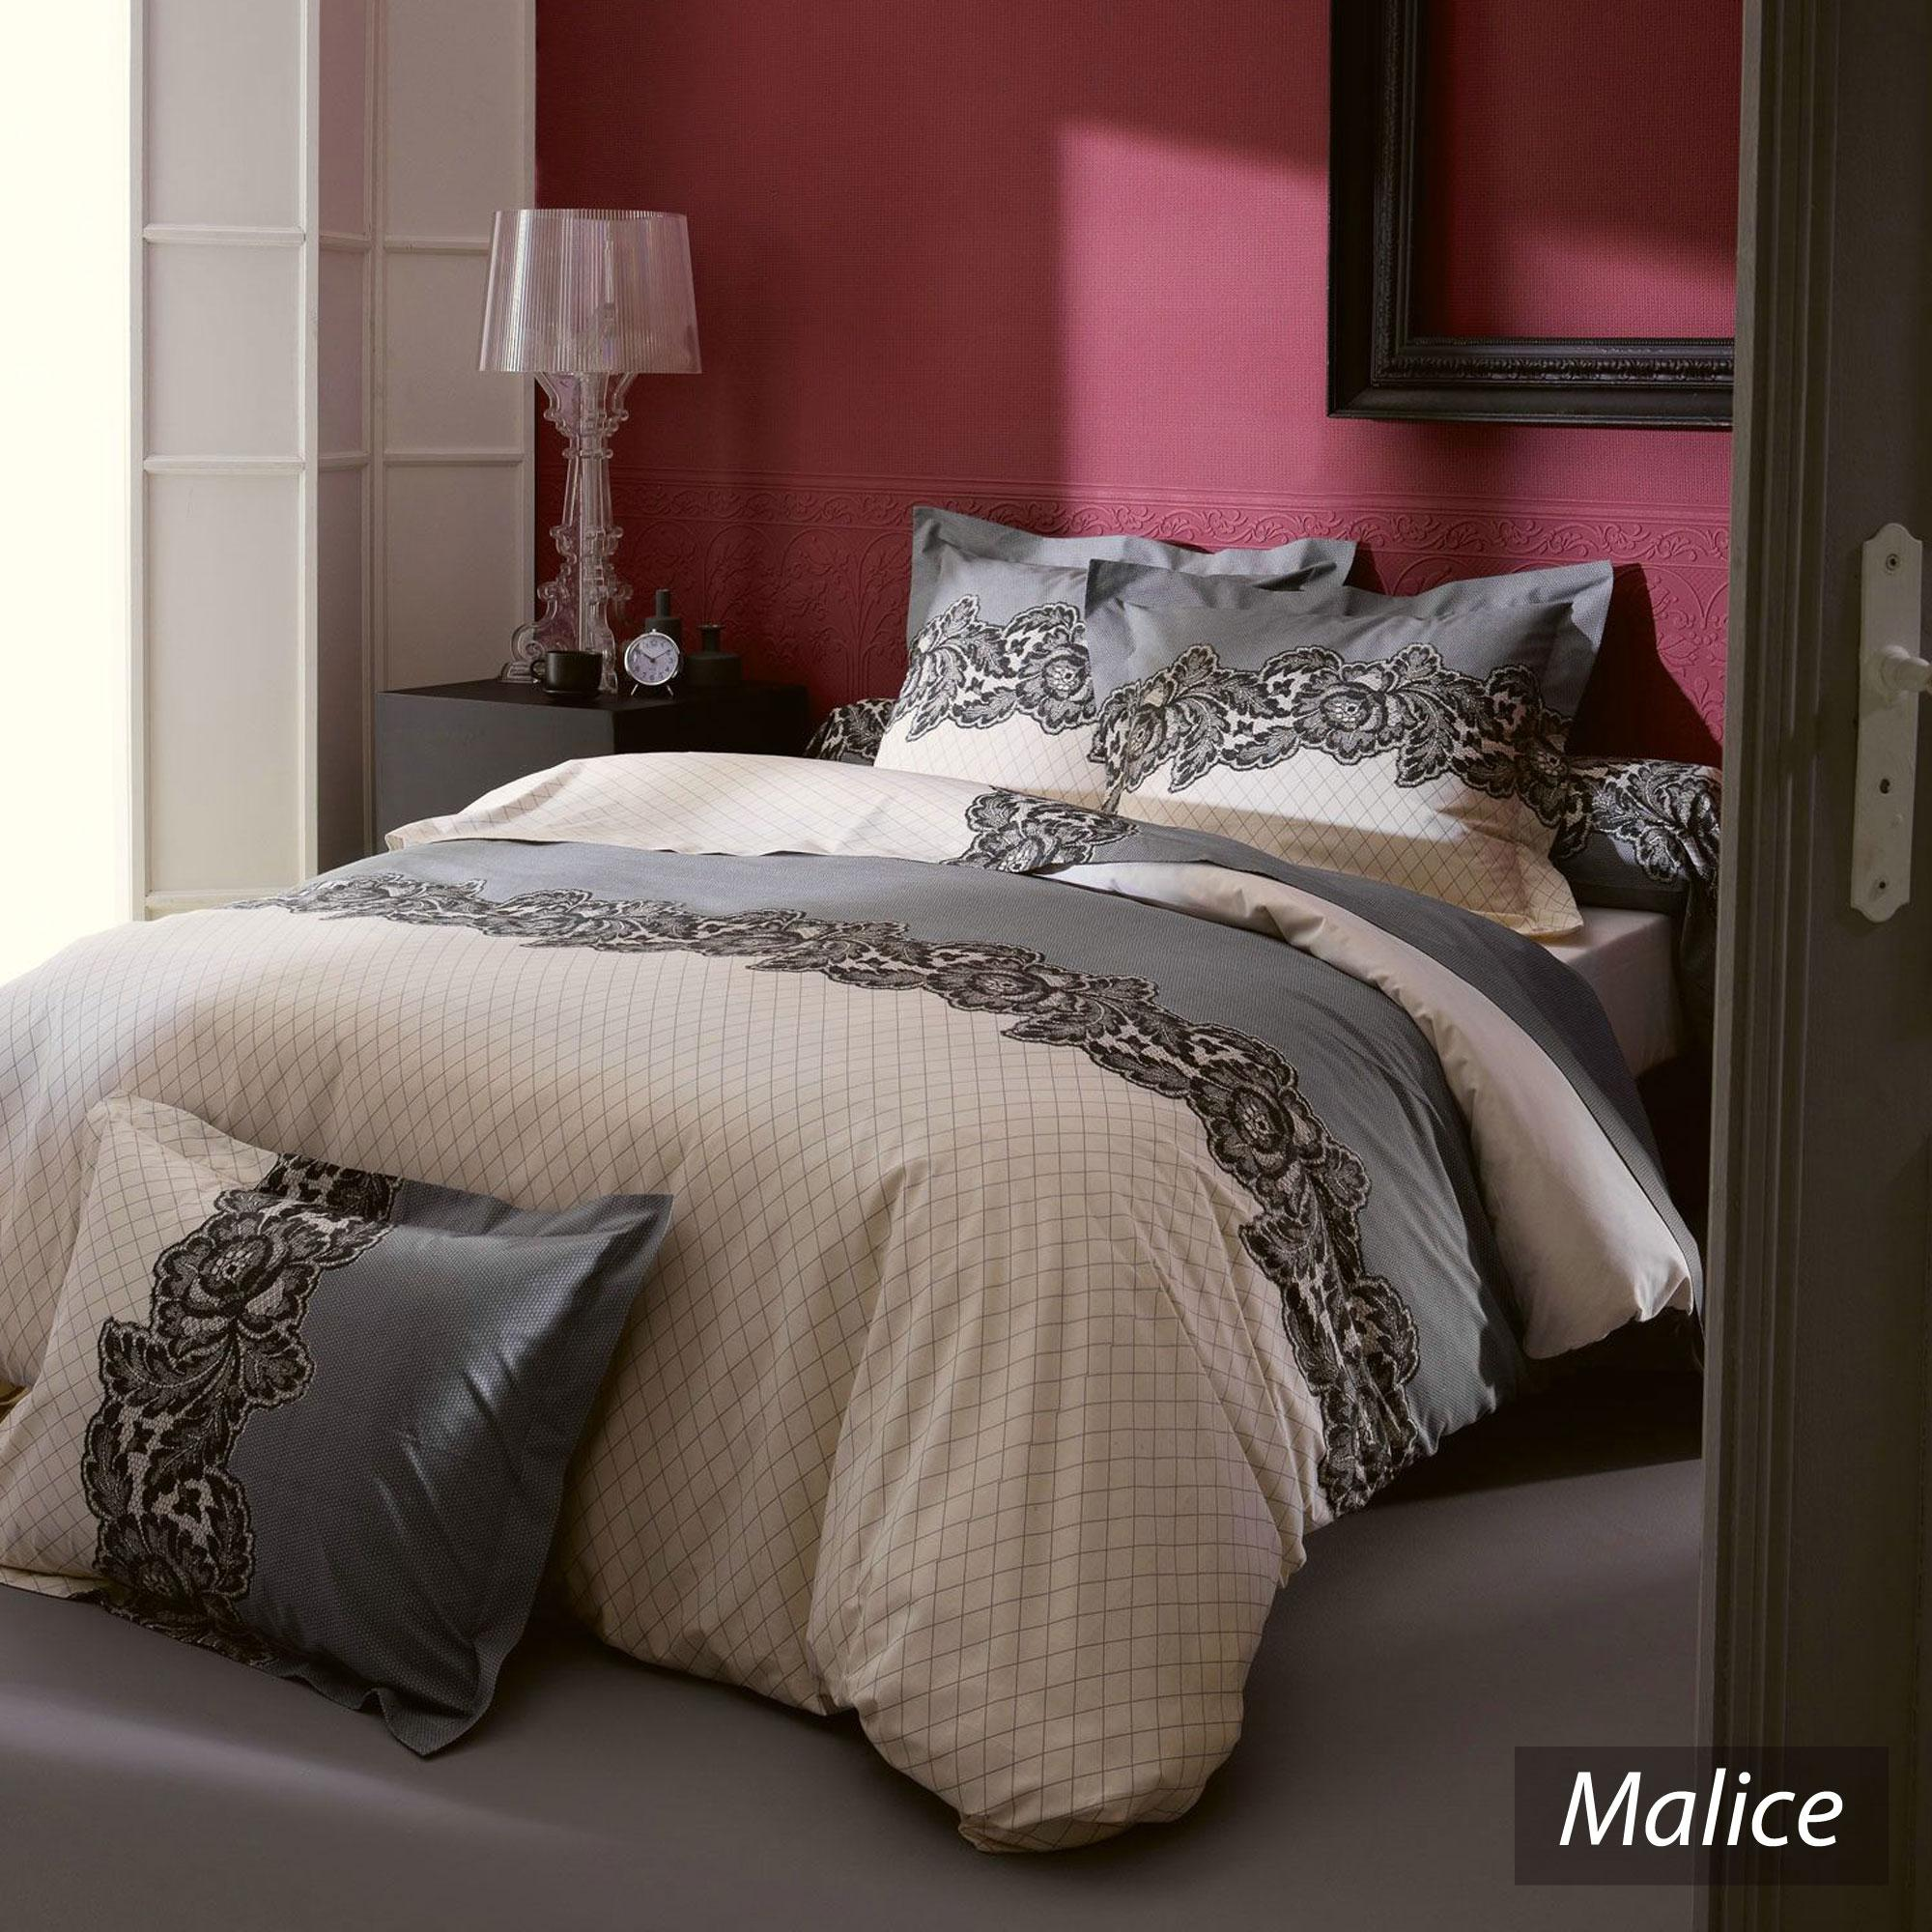 housse de couette 240x220 cm malice linnea vente de linge de maison. Black Bedroom Furniture Sets. Home Design Ideas